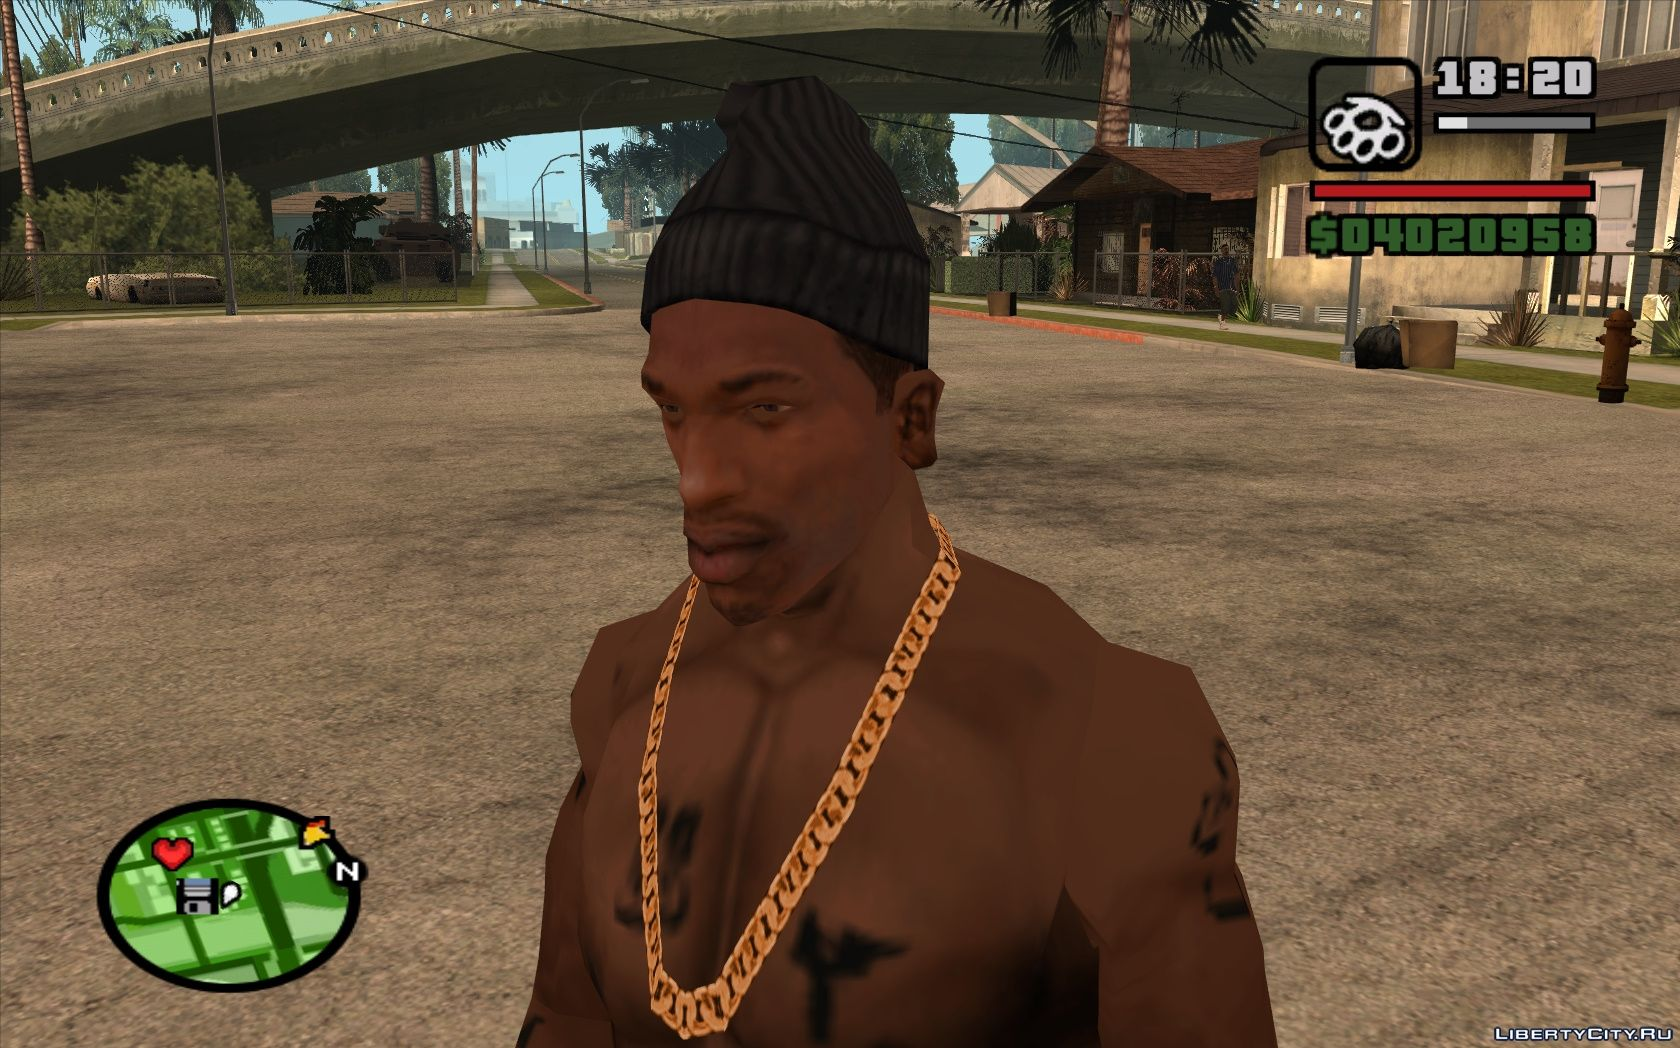 san andres black personals Released in 2005 for the pc, grand theft auto: san andreas is a third-person perspective open-world video game set in the fictional state of san andreas there are three fictional cities in the game, los santos, san fierro and las venturas how cheats work cheat codes for gta san andreas are entered during gameplay by typing in the cheat you want to activate.